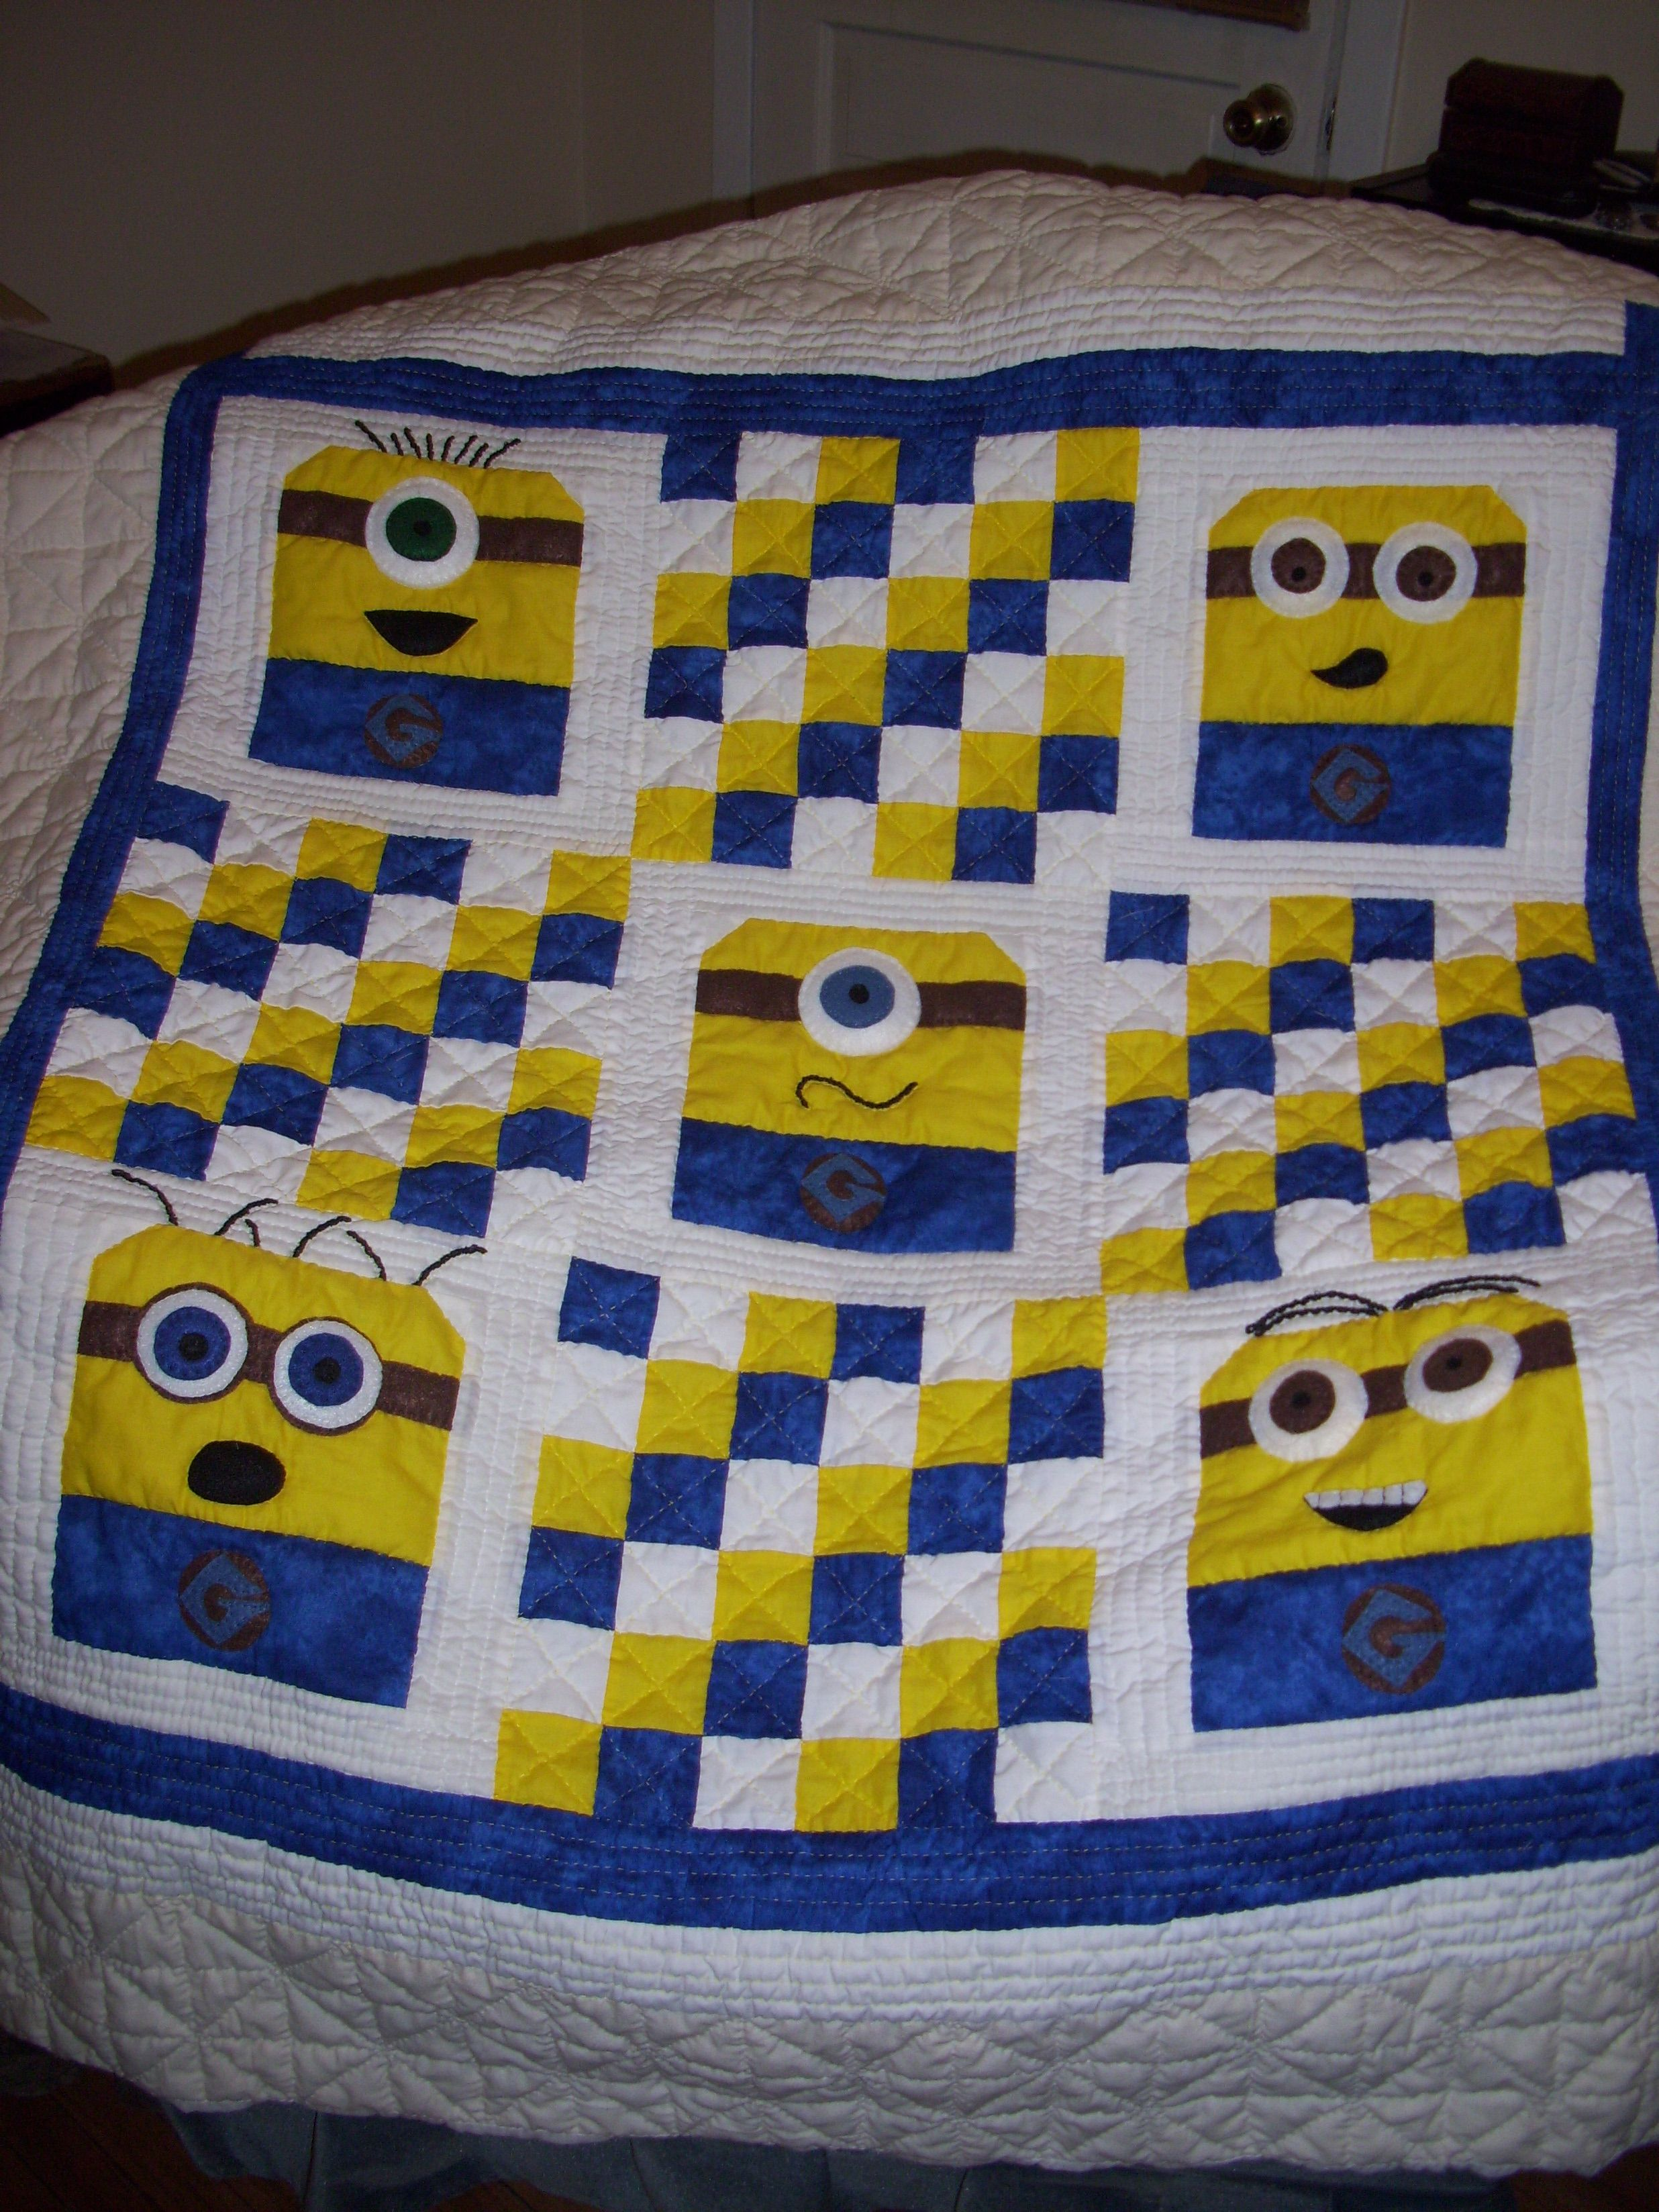 My Daughter Emma would love this quilt Minion Quilt